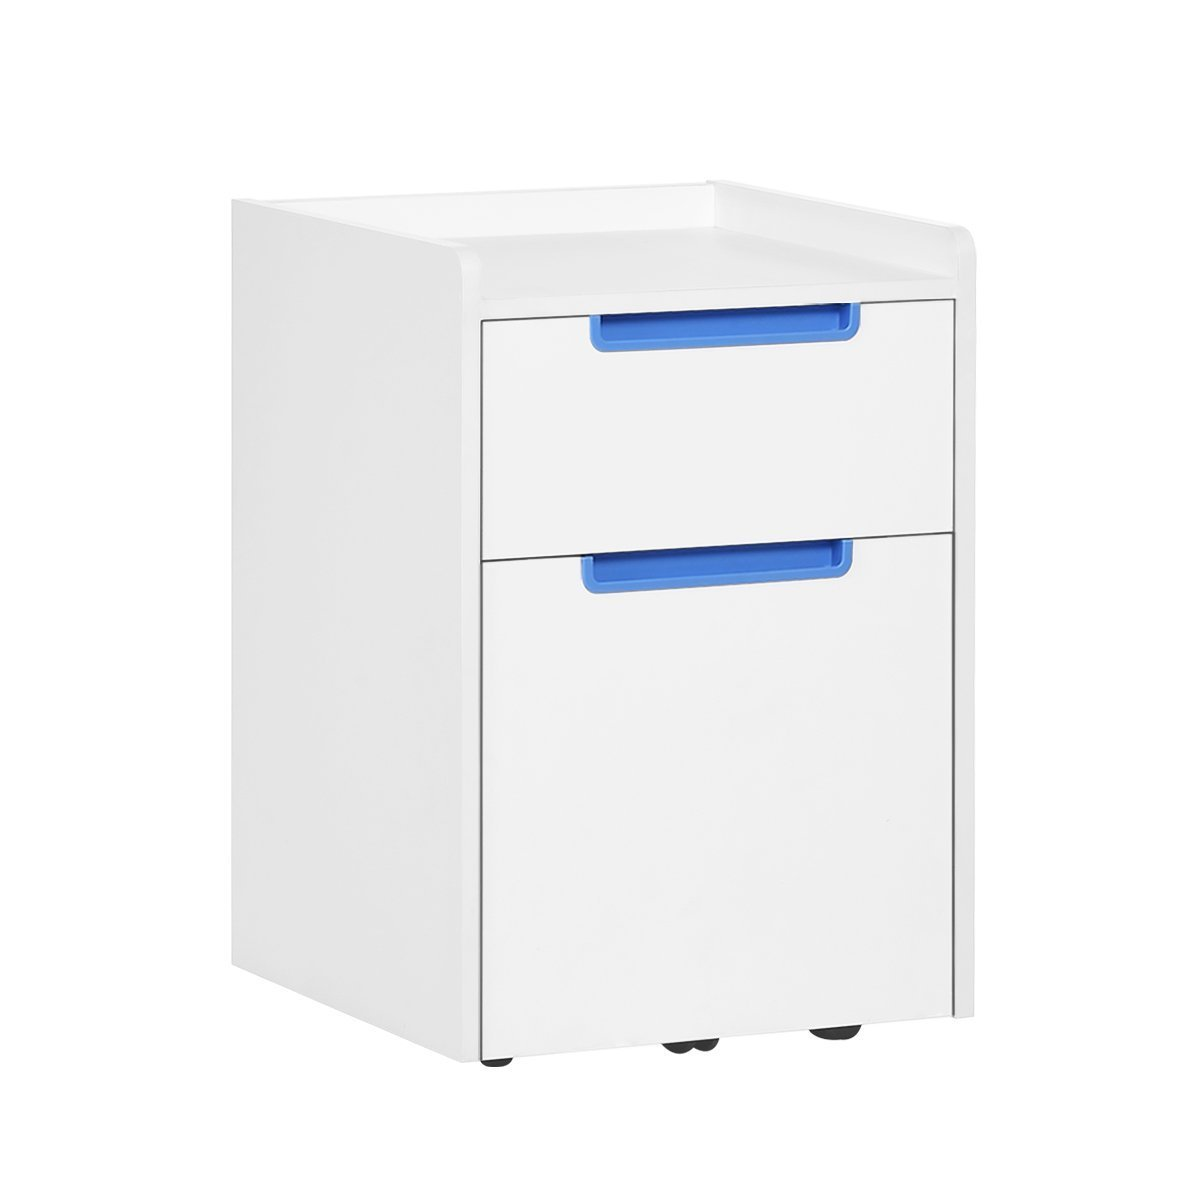 DEVAISE 2-Drawer Wood Mobile File Cabinet with Wheels, Letter Size / A4, White & Blue CZBOAO